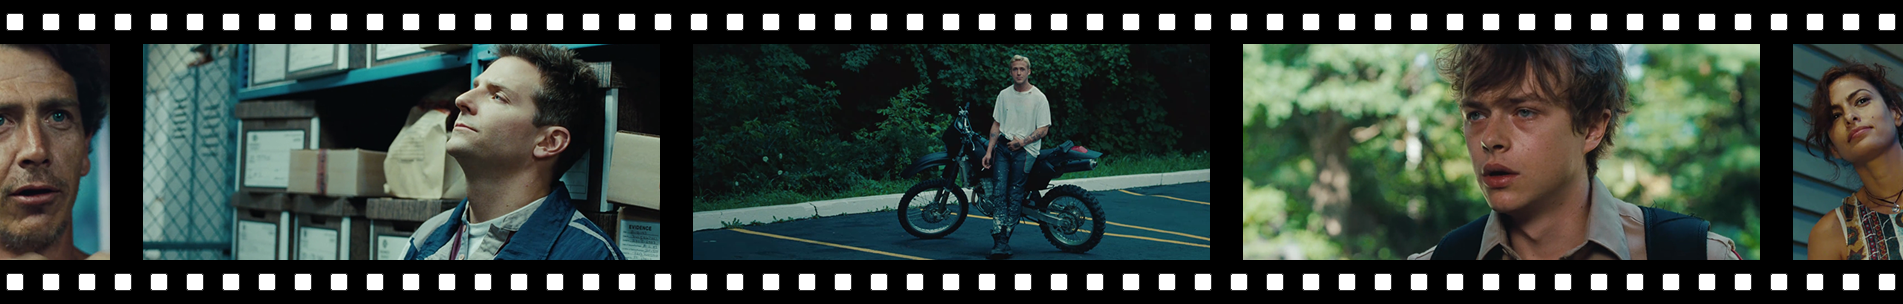 """Pellicule """"The Place Beyond The Pines"""""""